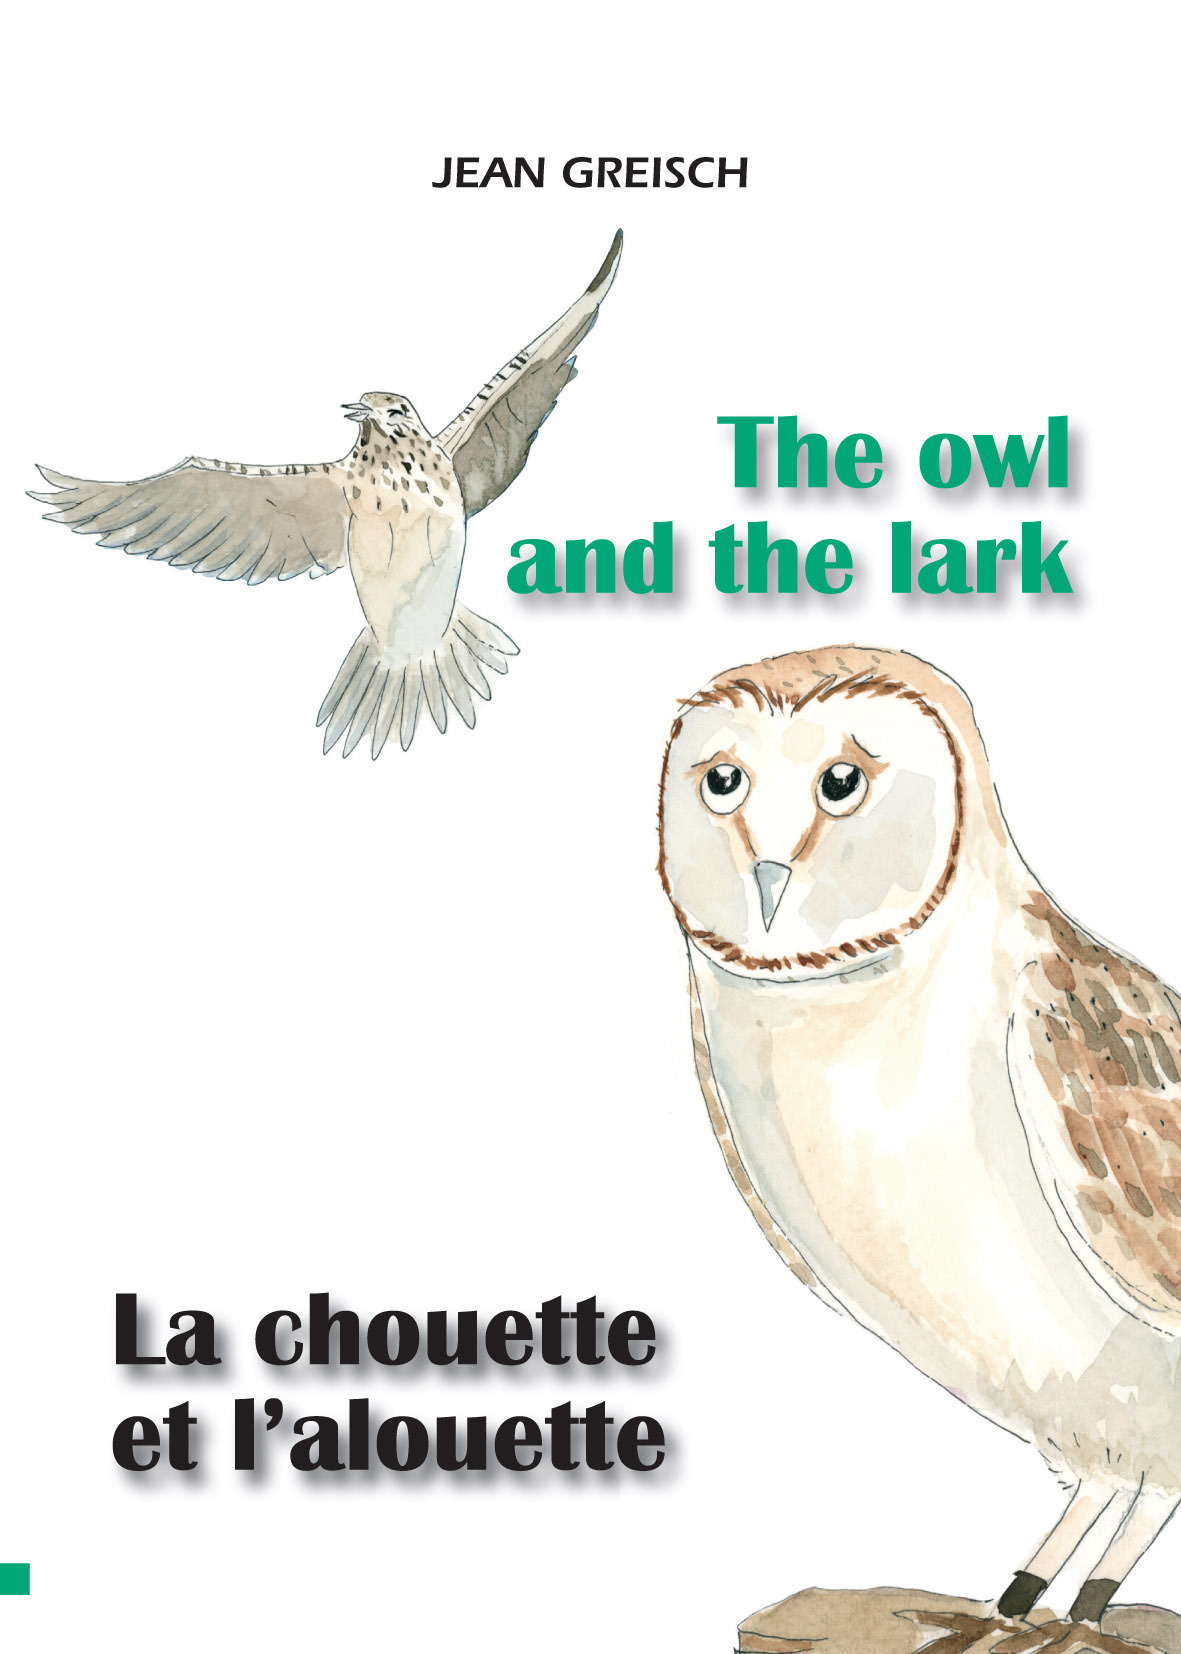 LA CHOUETTE ET L'ALOUETTE / THE OWL AND THE LARK